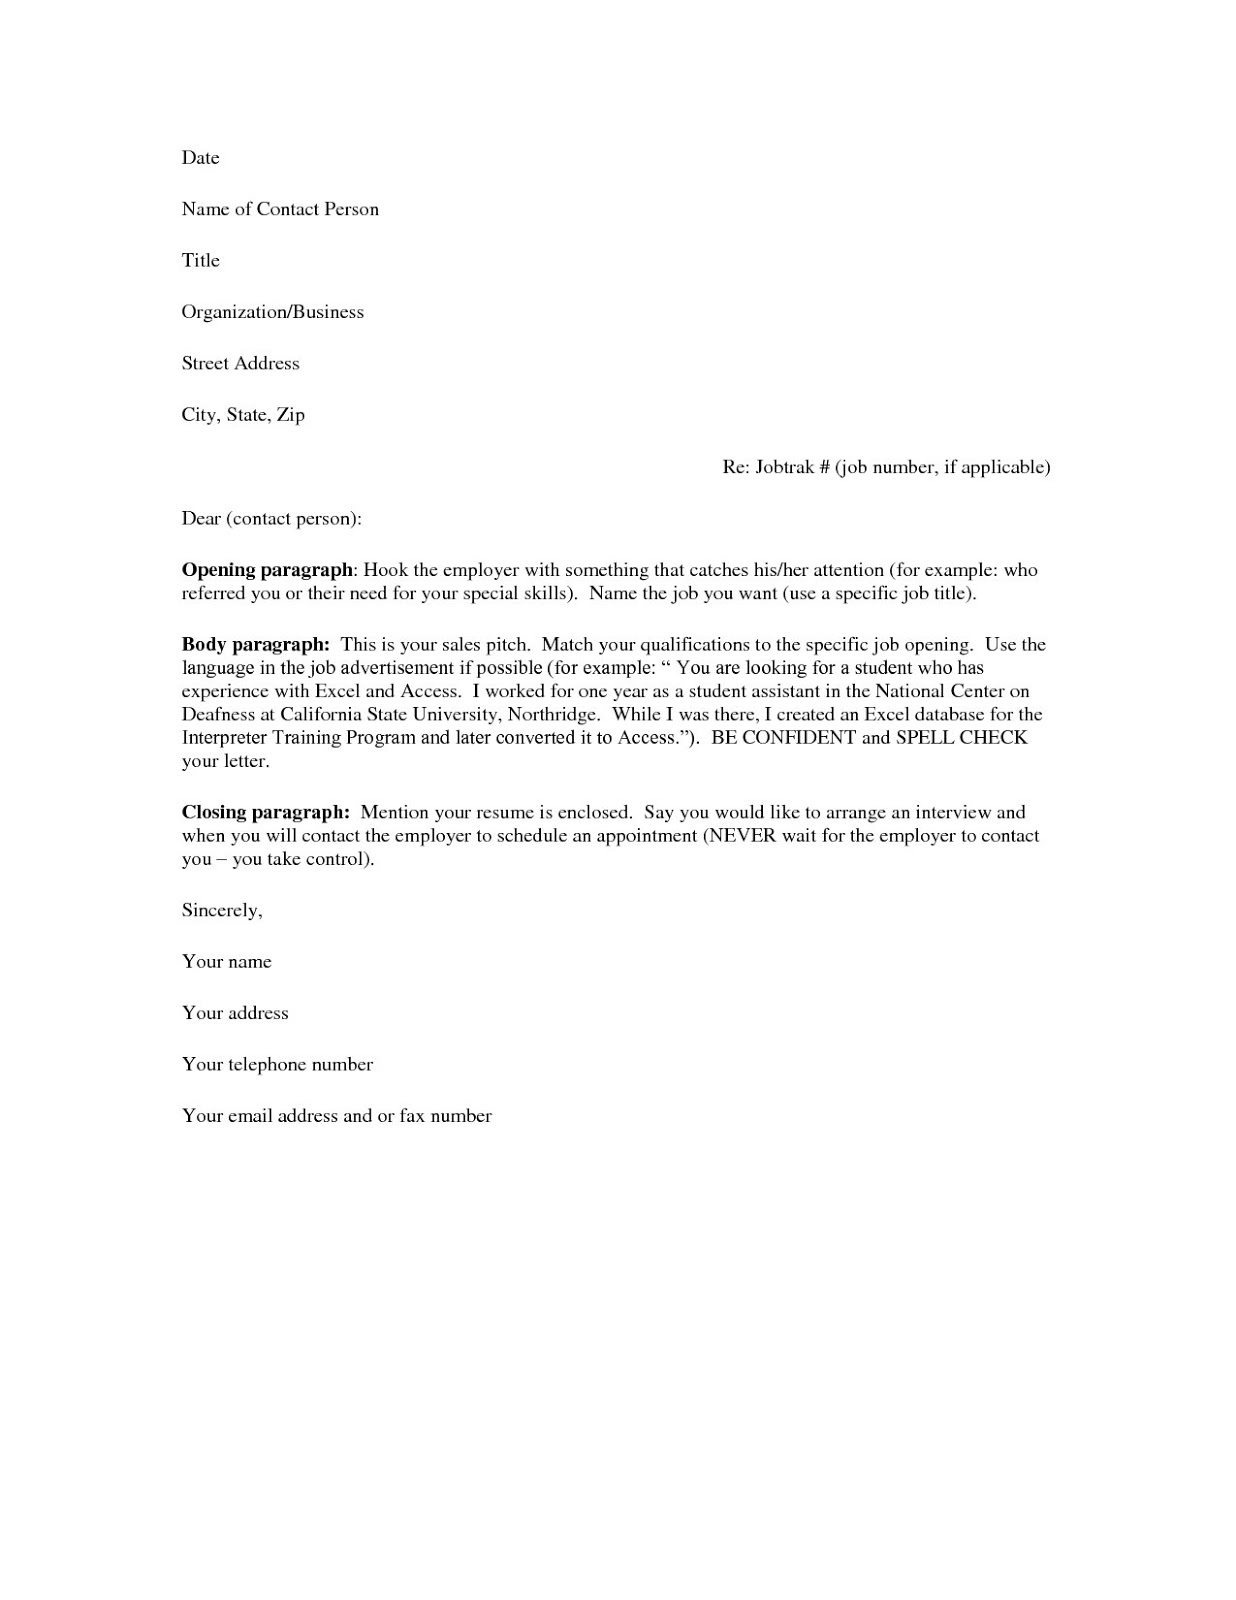 What is a resume cover letter examples